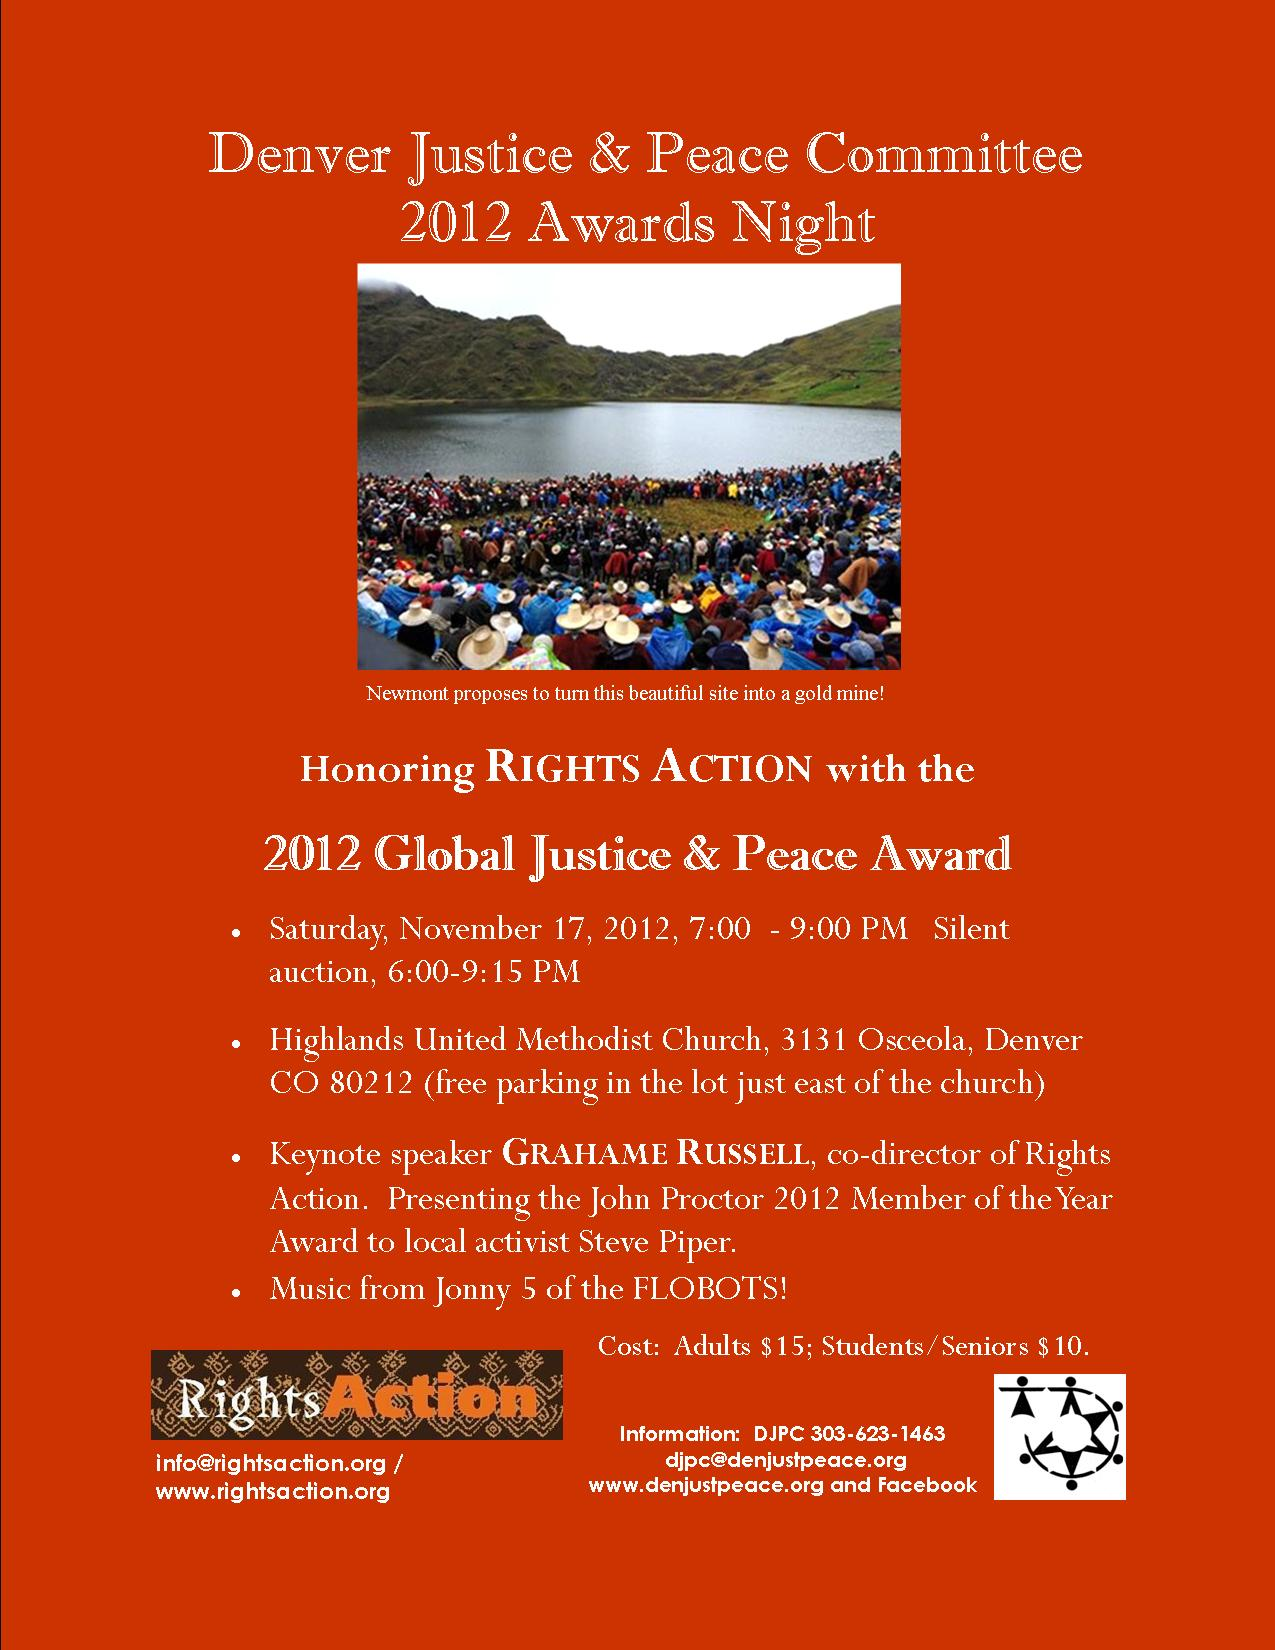 Tonight Awards Night 2012!